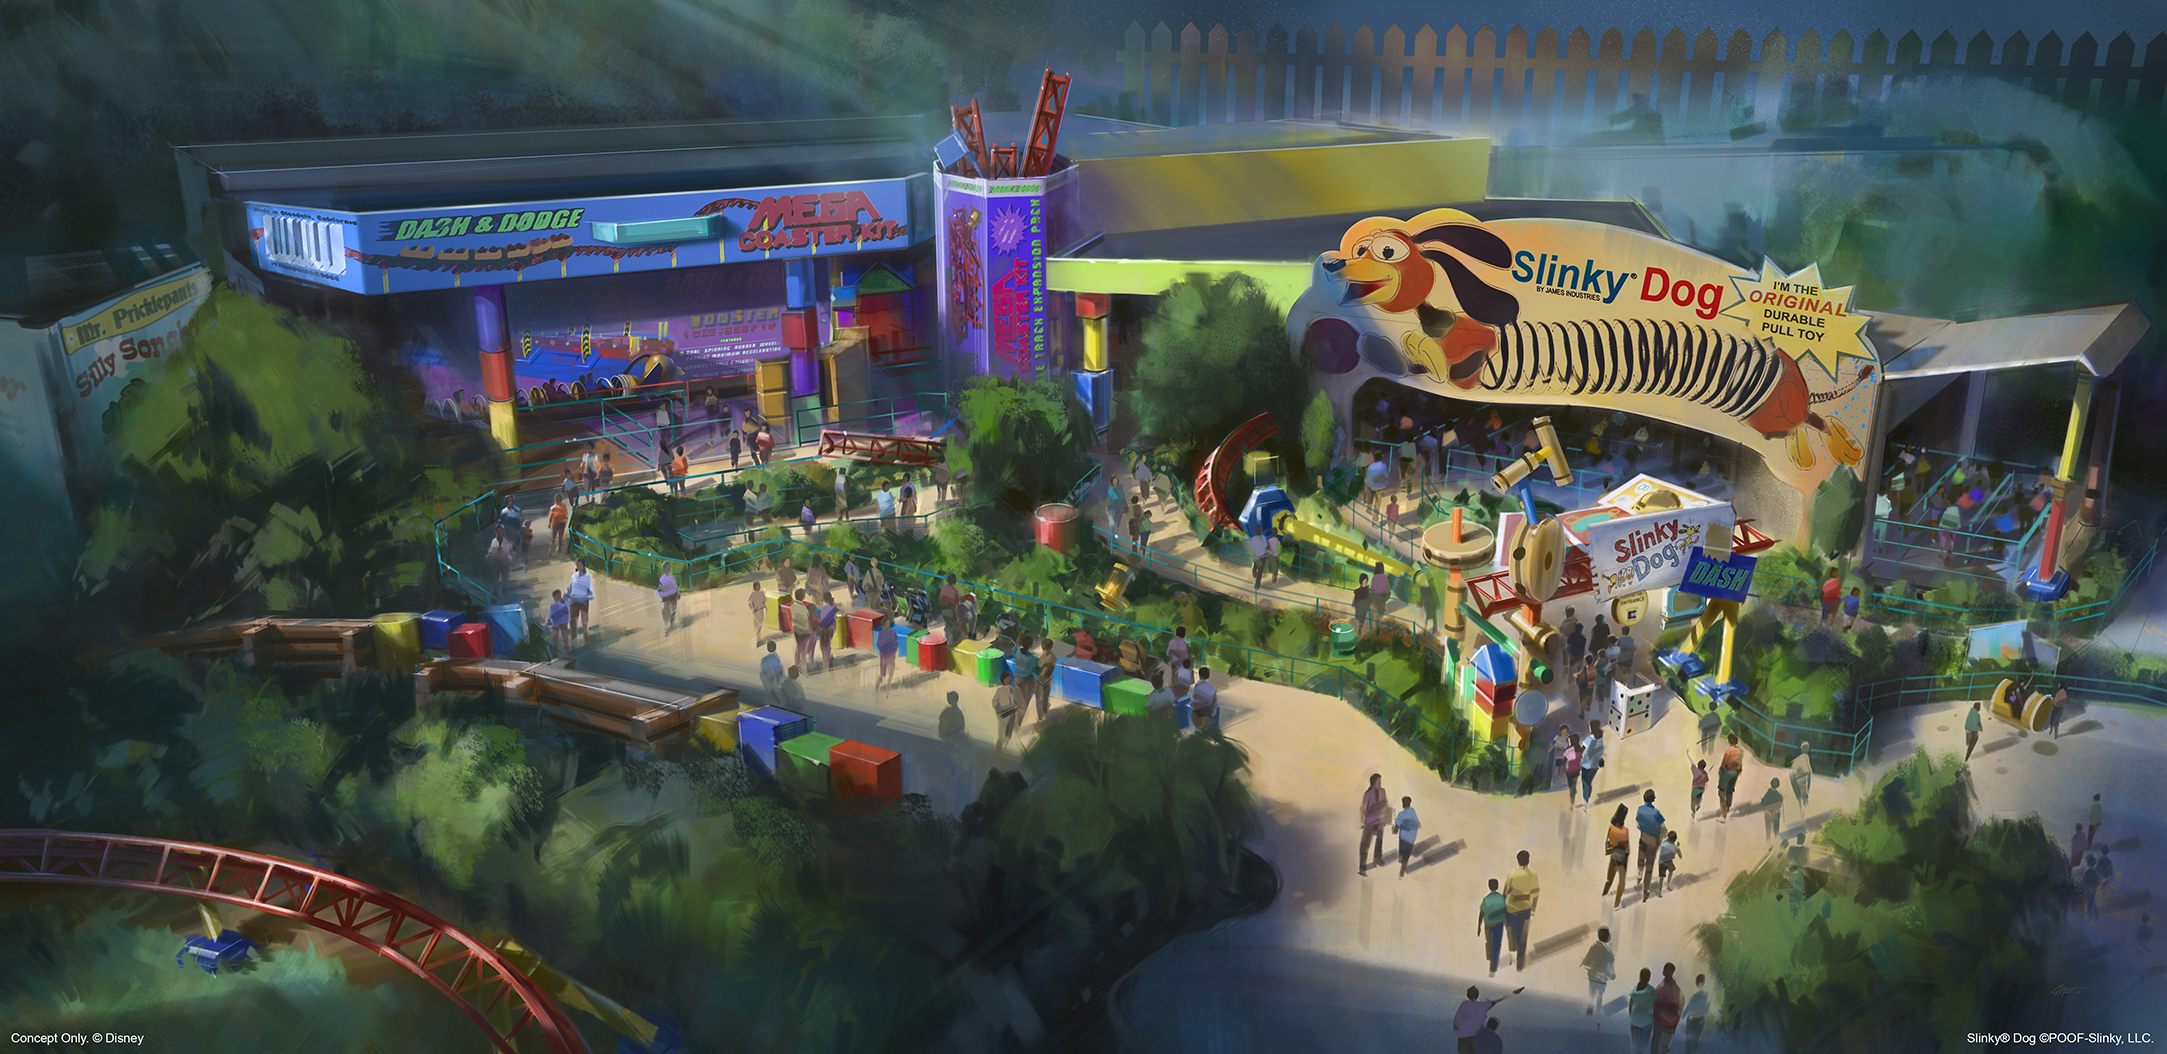 Toy Story Land concept art